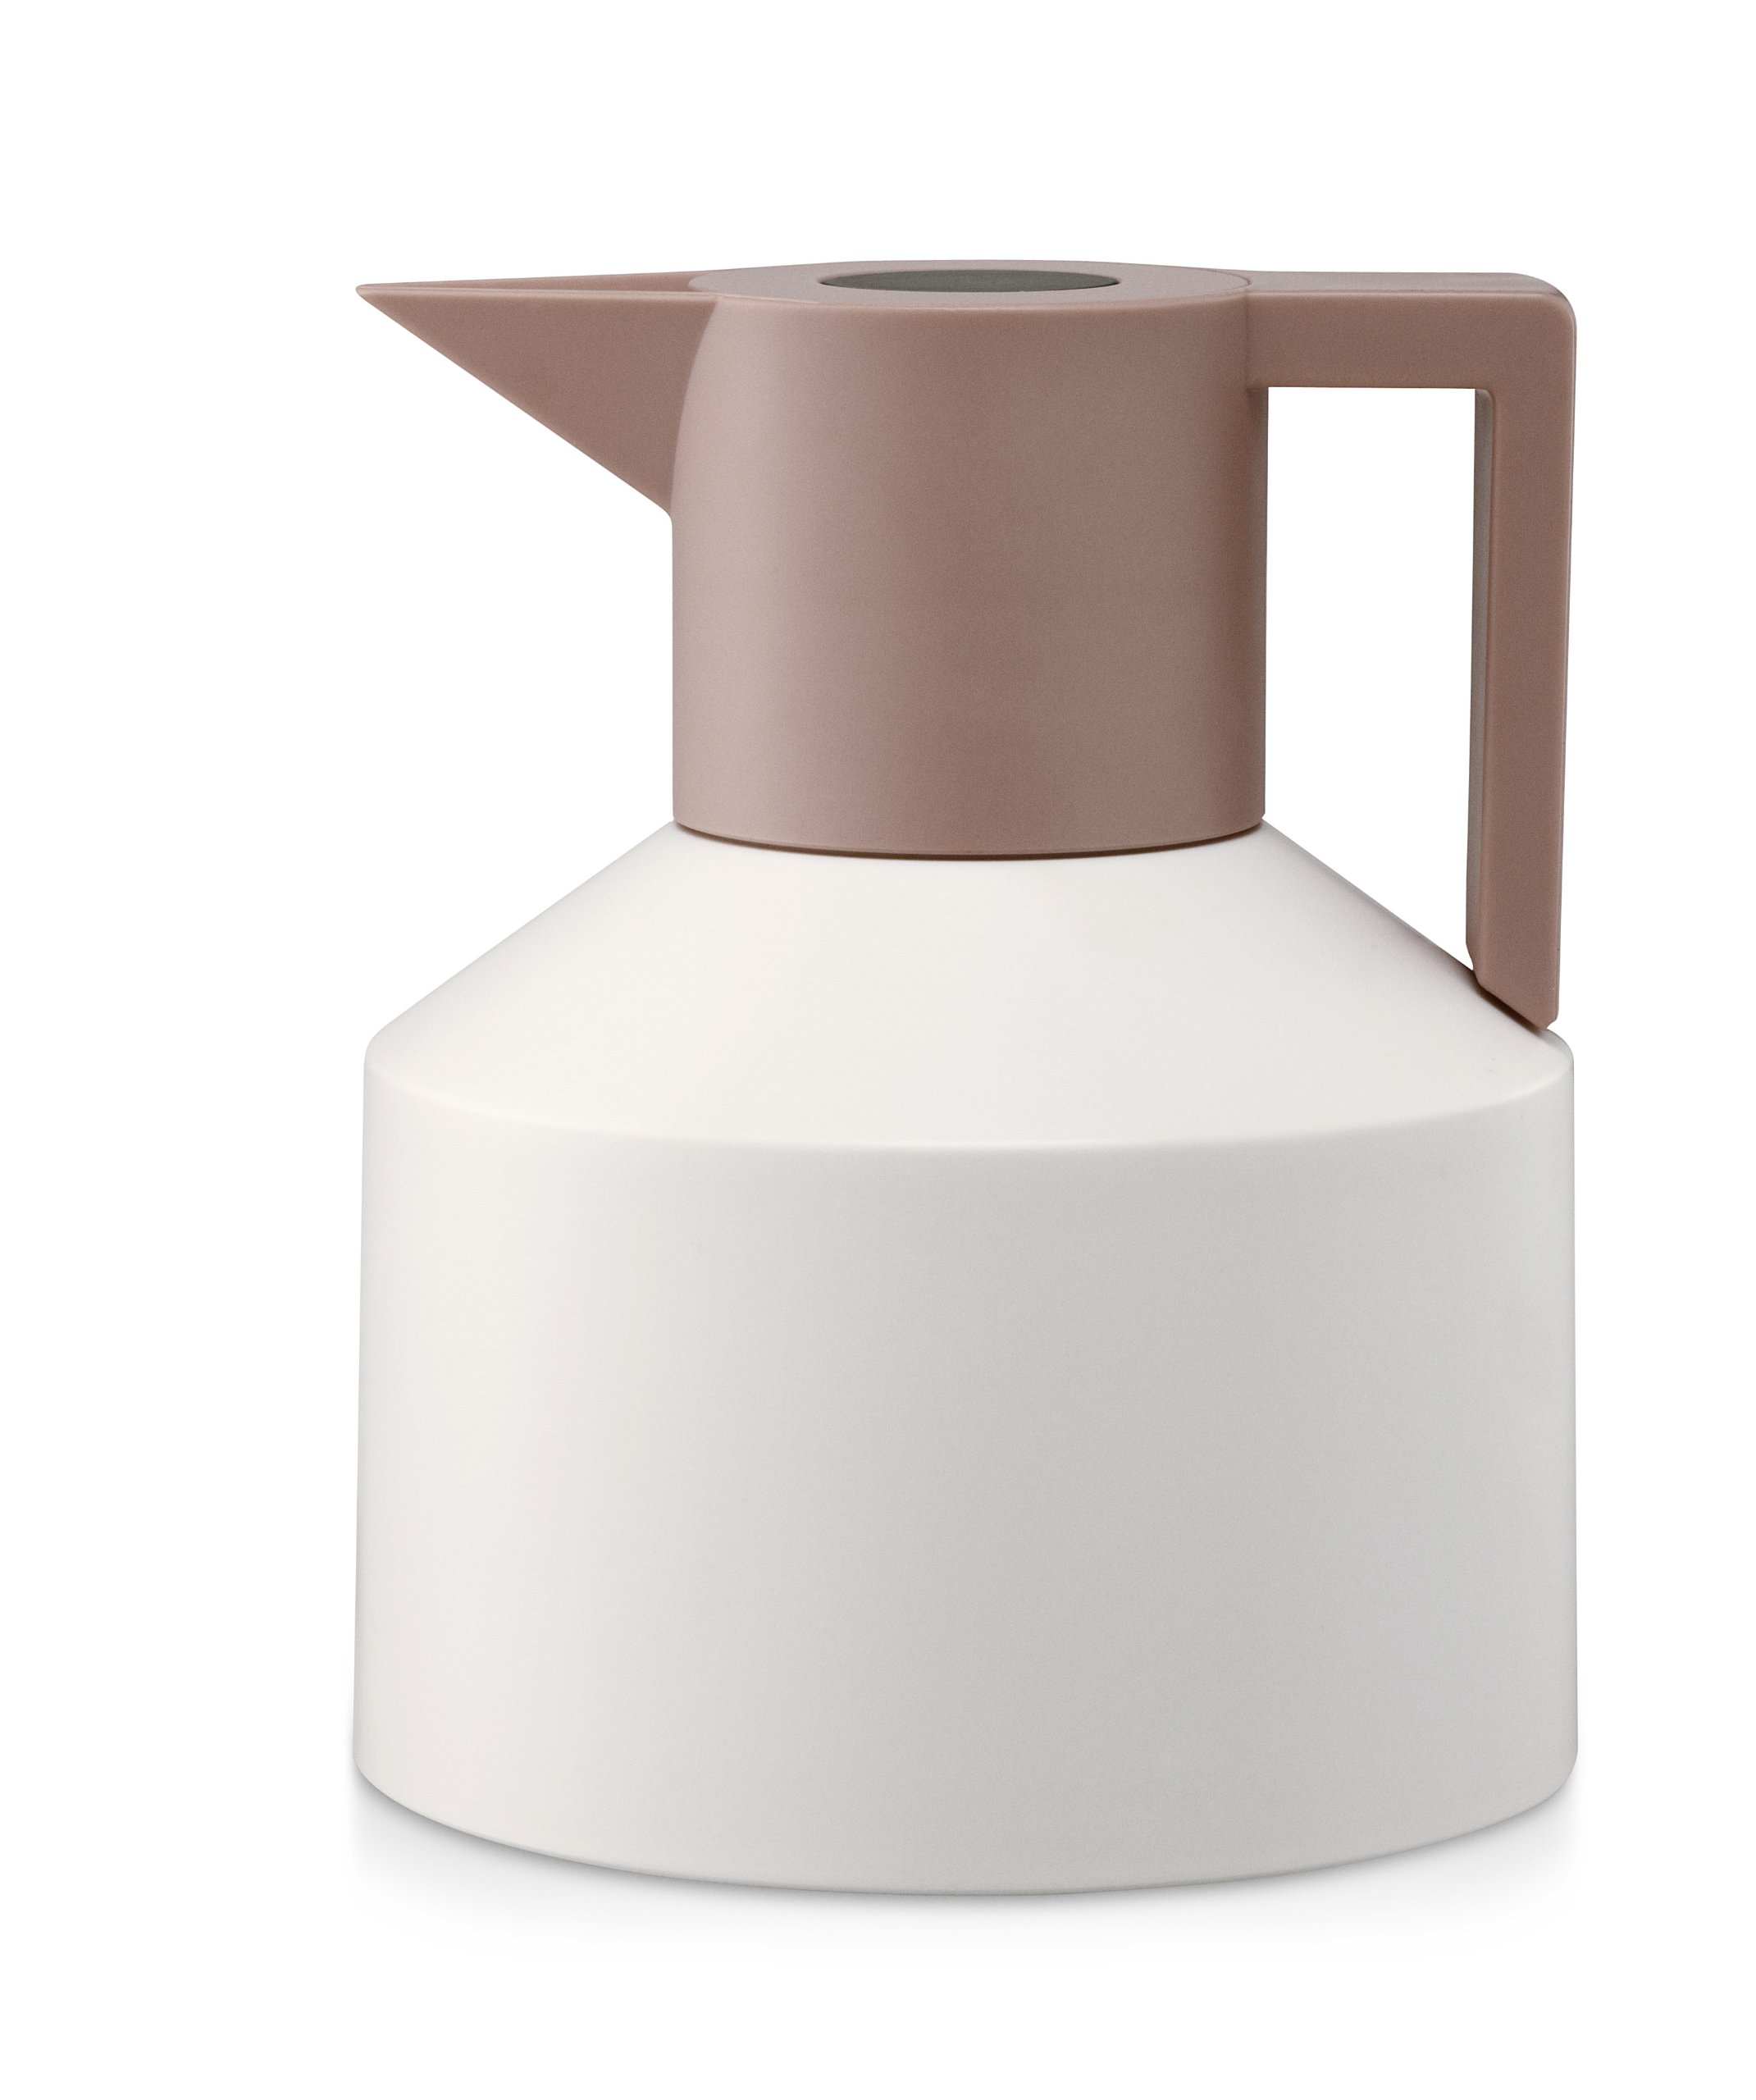 Geo Thermo Pot Normann Thermo Vacuum Flask, White by Geo Thermo Pot (Image #1)